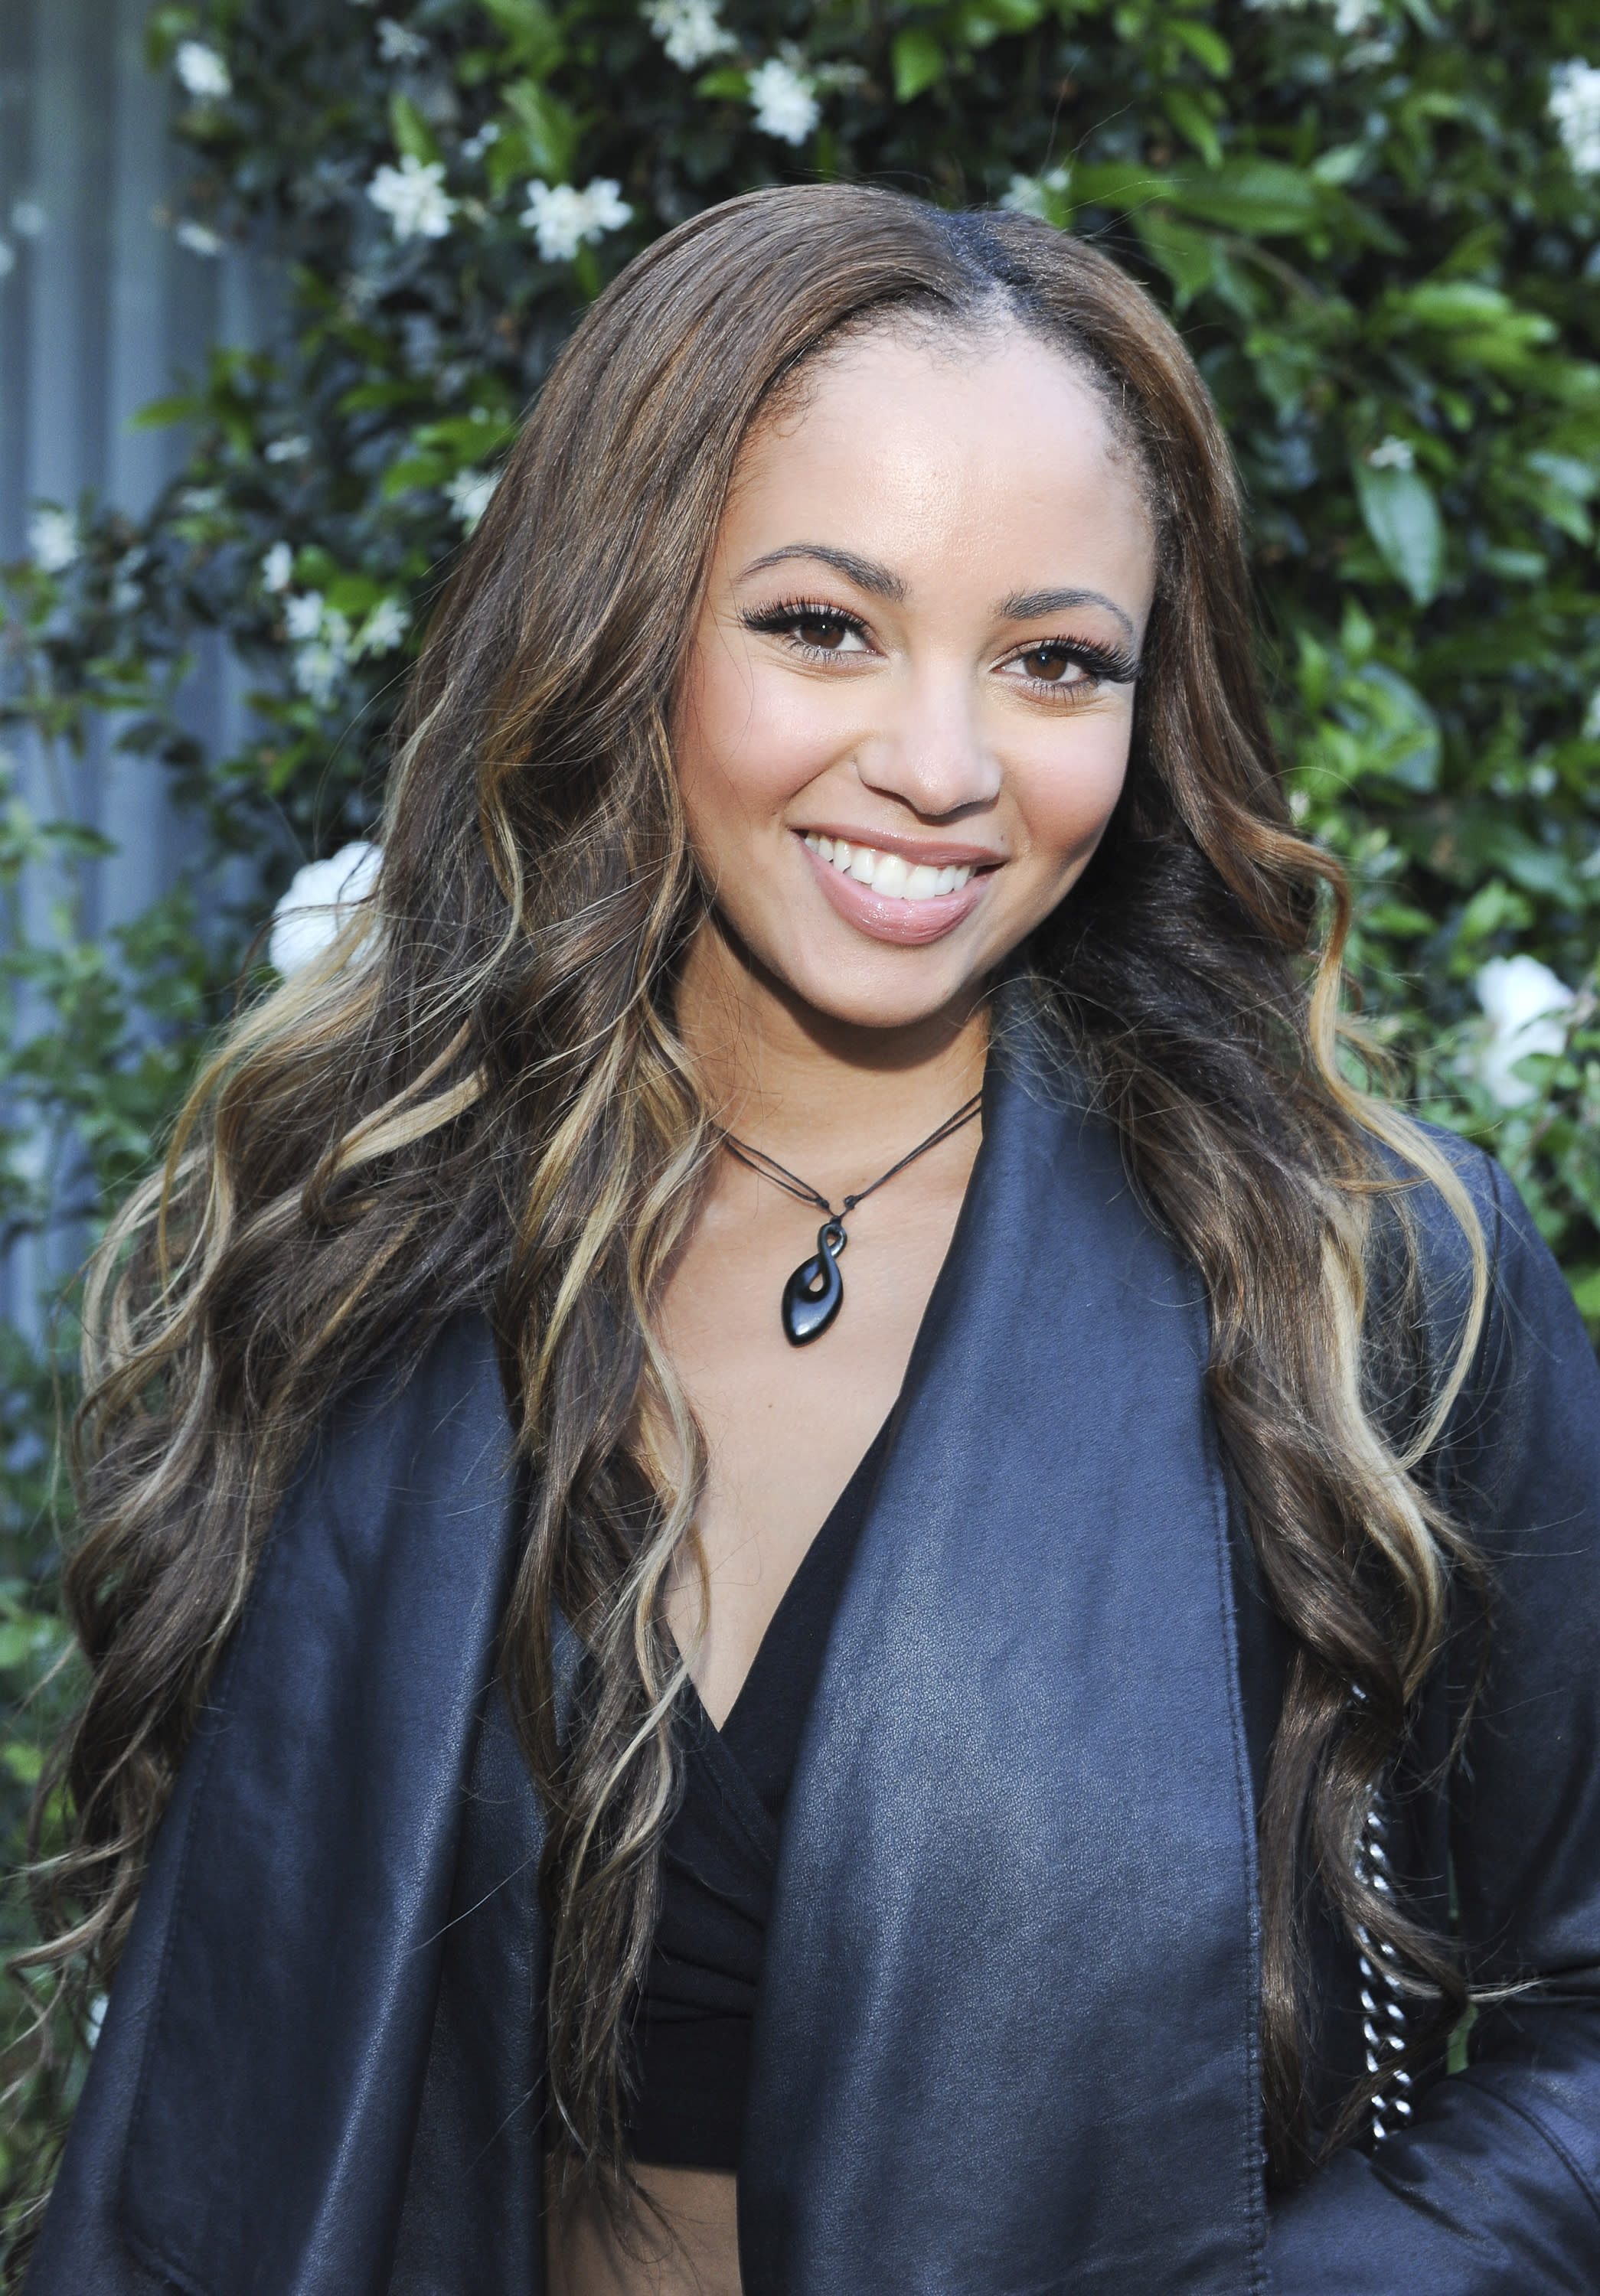 Vanessa Morgan nudes (48 photos), pictures Tits, YouTube, butt 2015